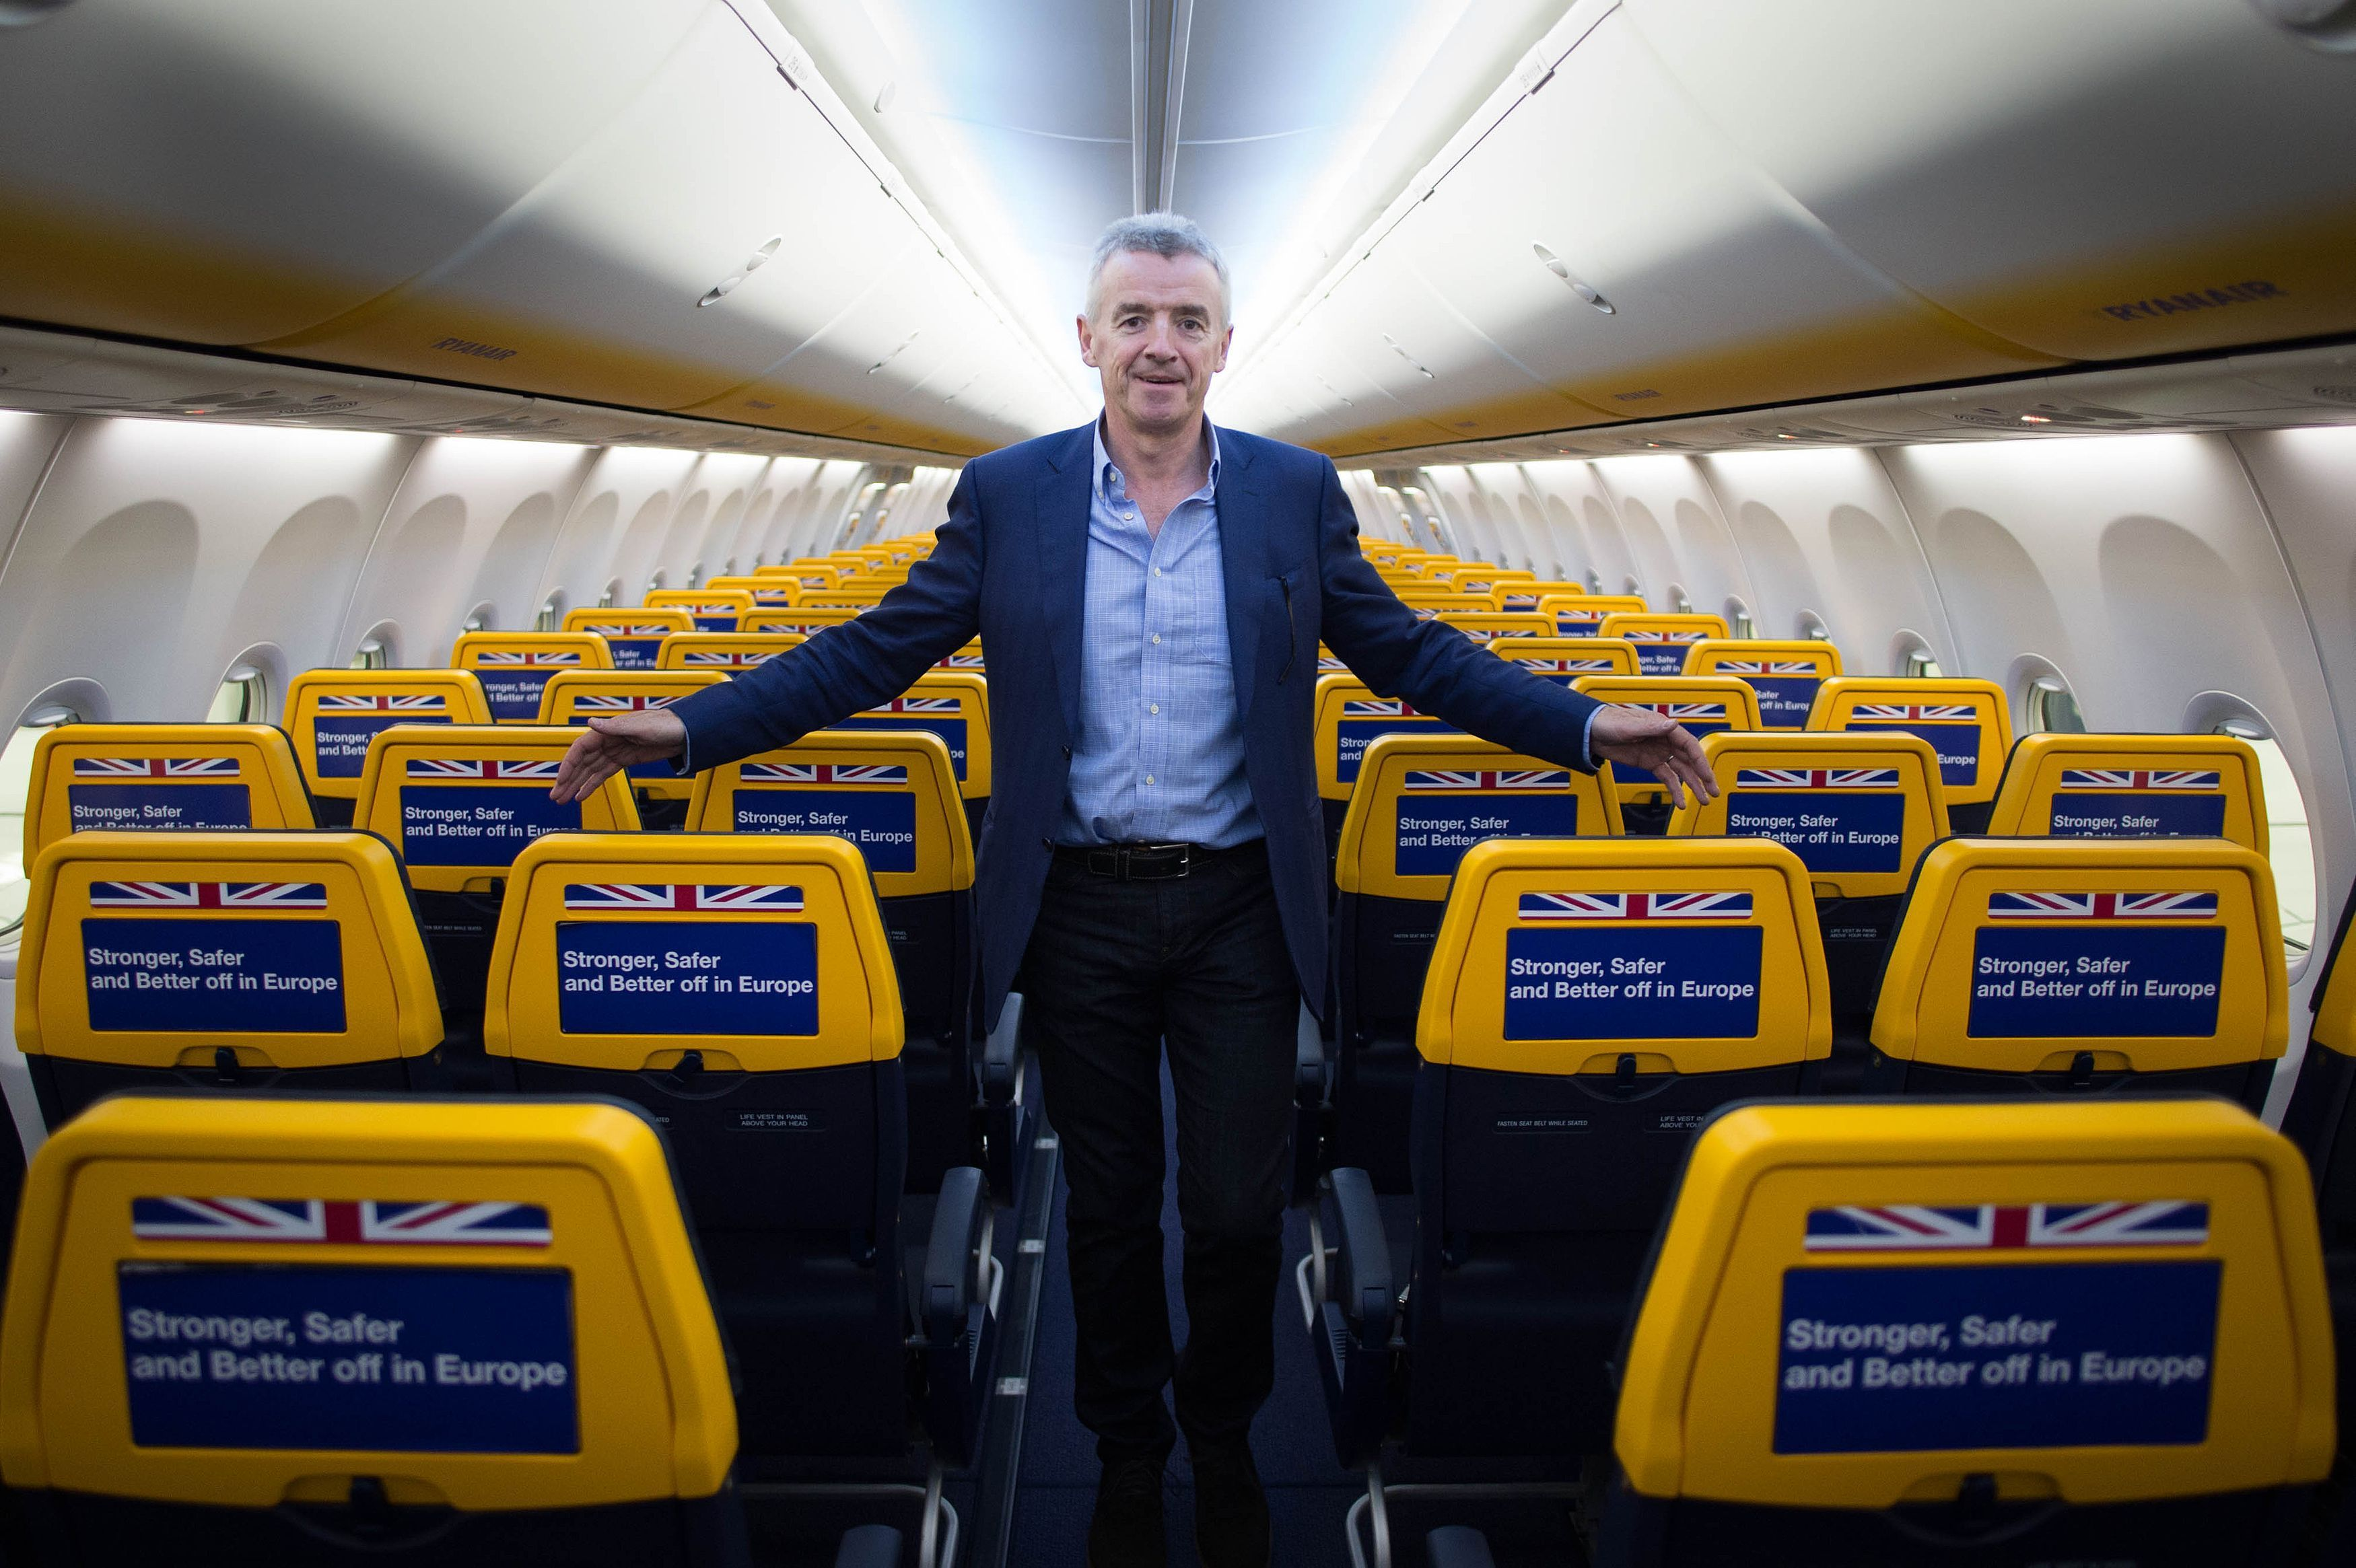 Pay to carry luggage on to Ryanair flights